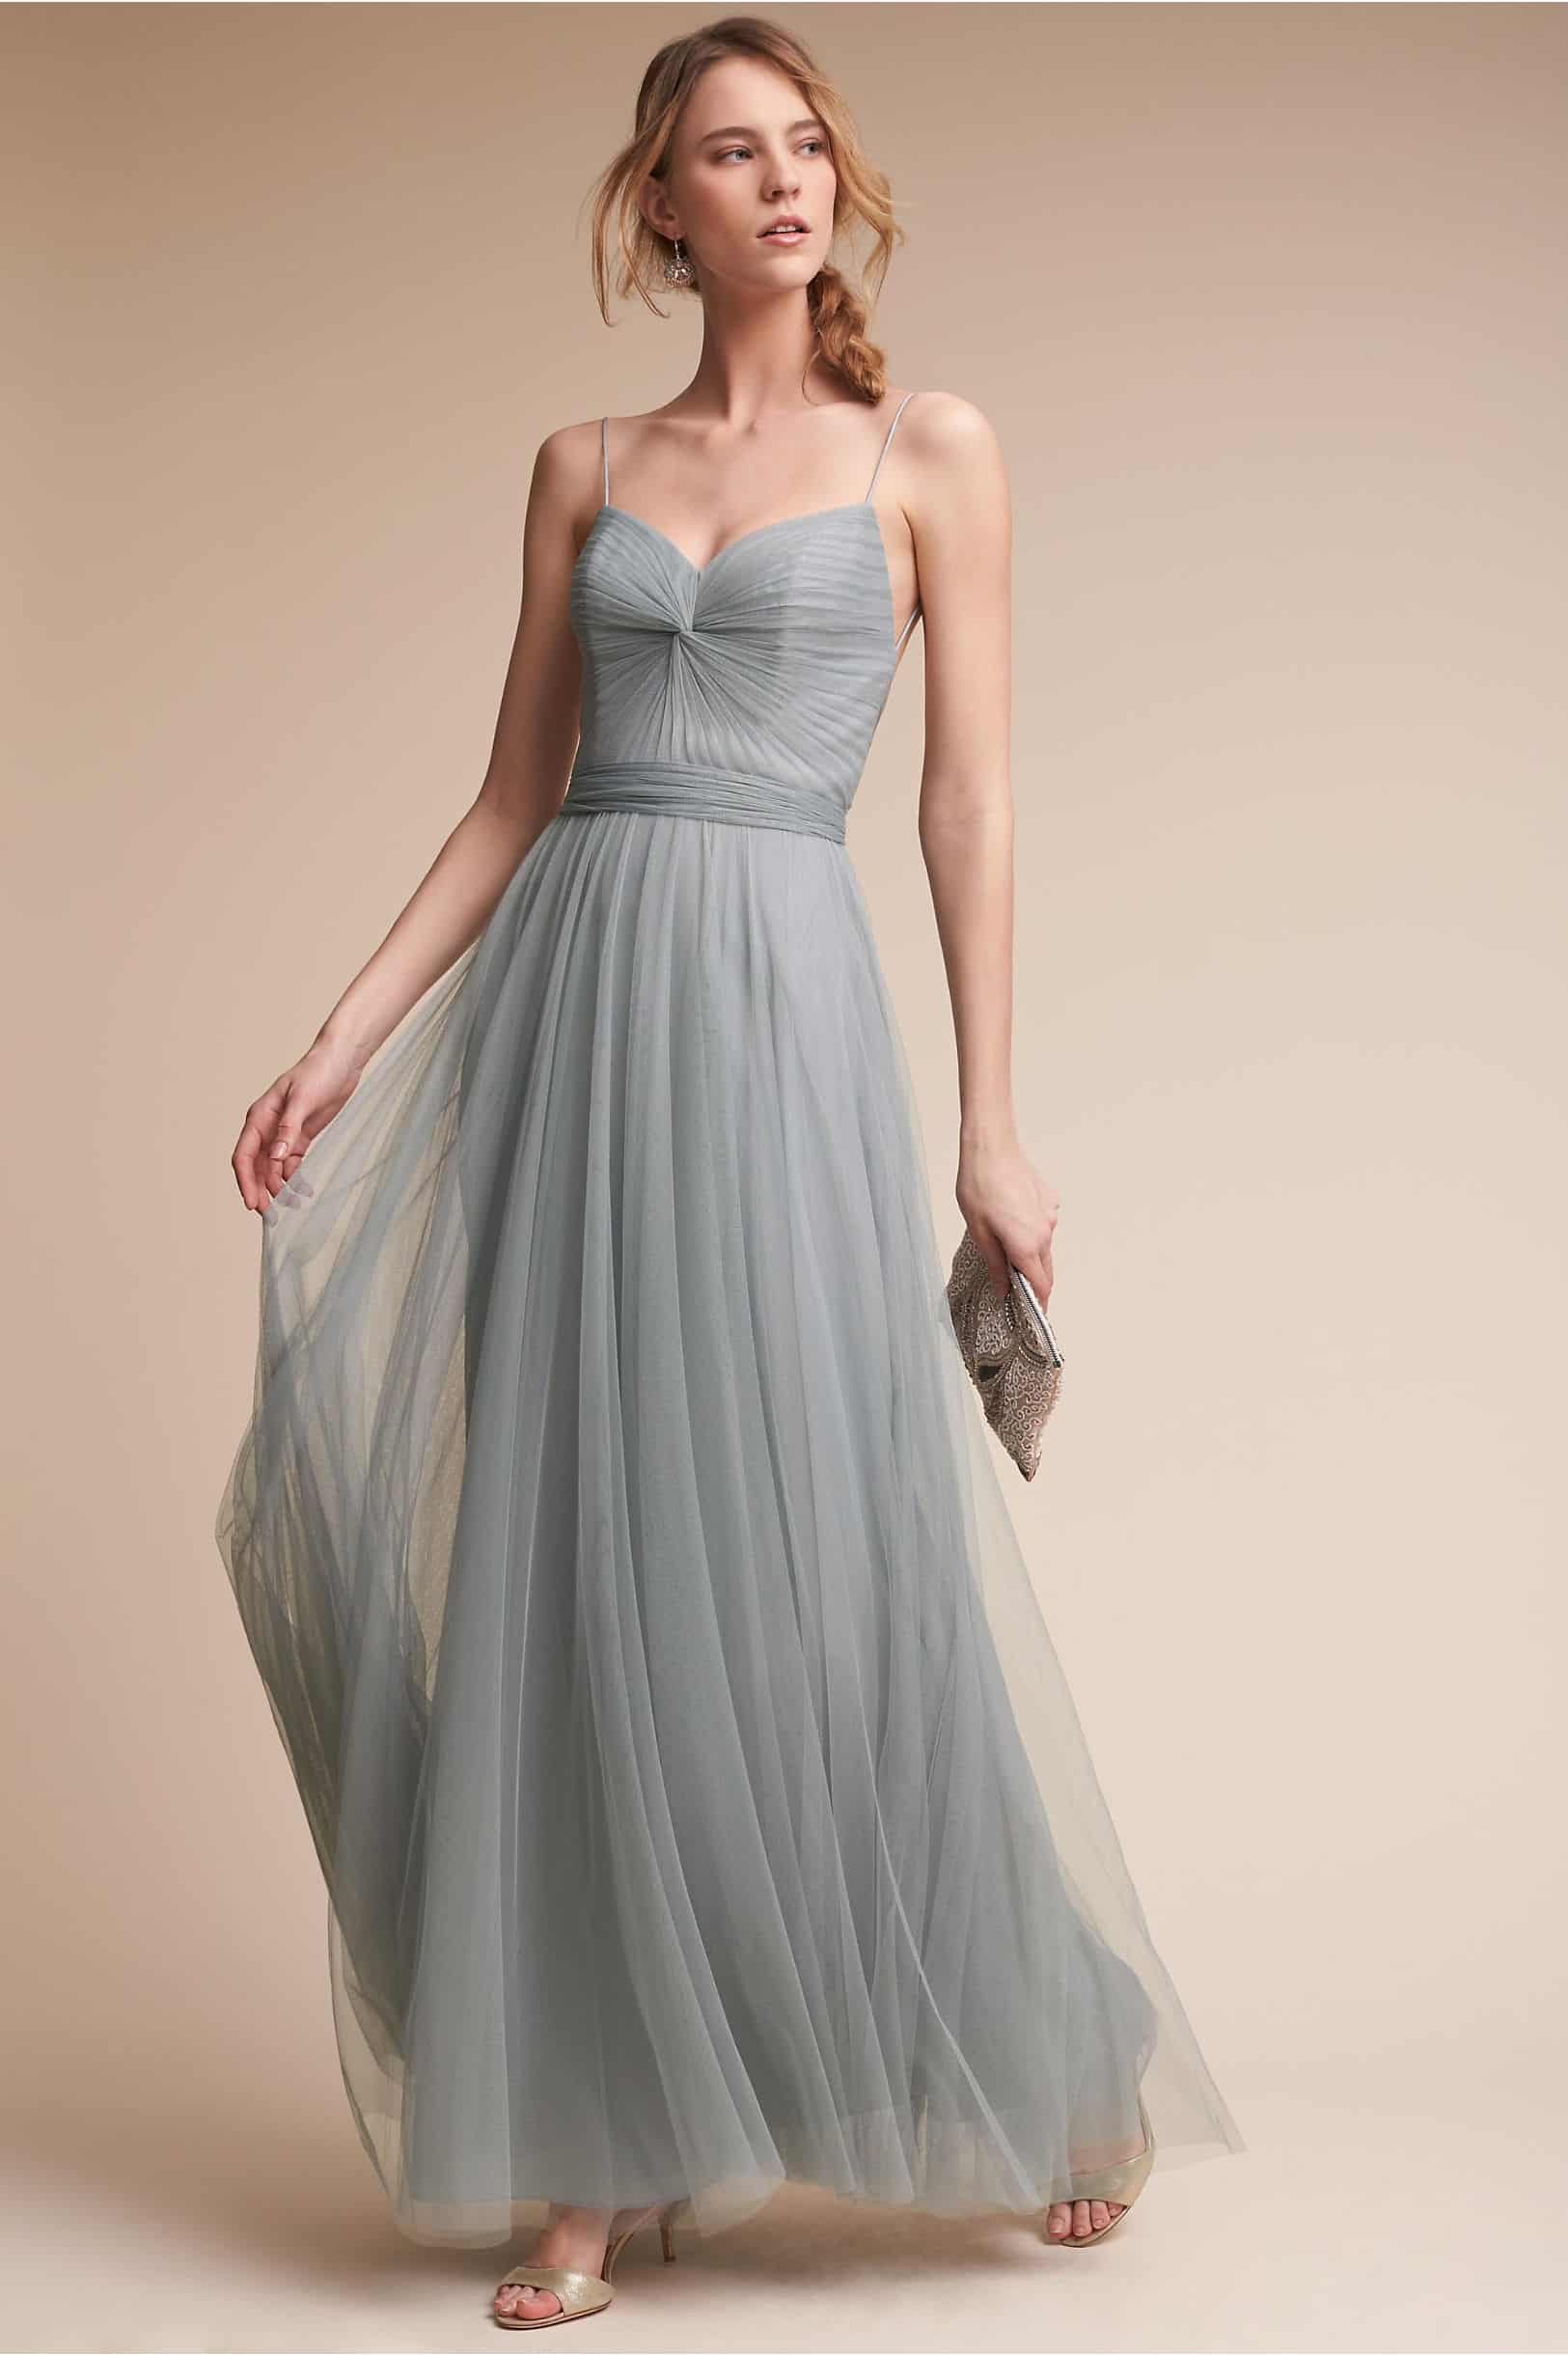 Light blue bridesmaid dresses light blue bridesmaid dresses ombrellifo Gallery